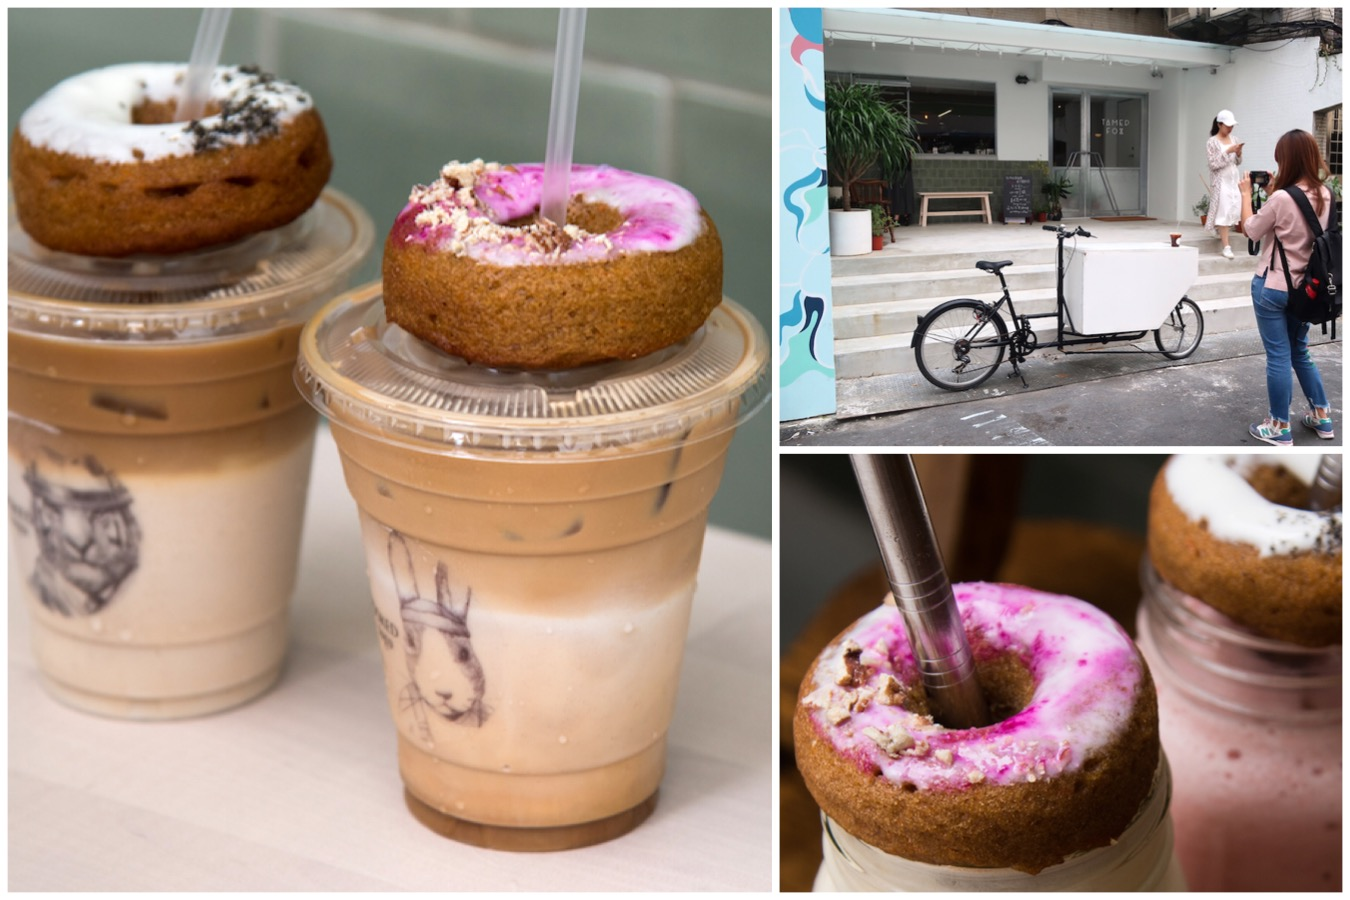 Tamed Fox - Hot NEW Café At Taipei, Healthy Donuts On Latte